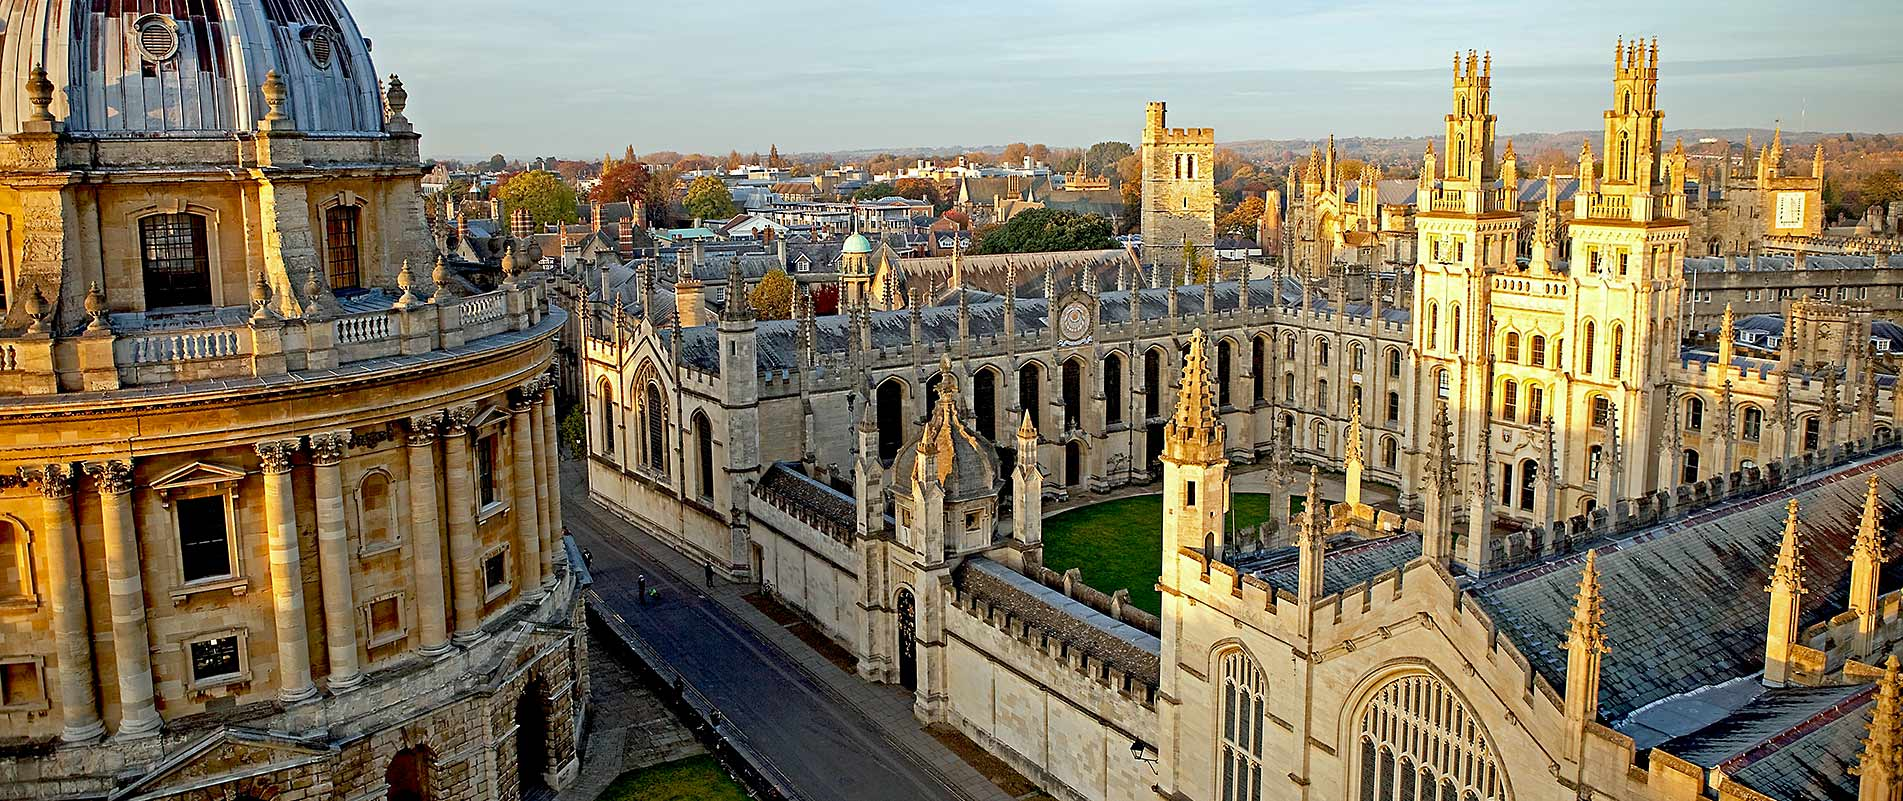 Oxford University, the former home of the annual Oxford Literary Festival in England.